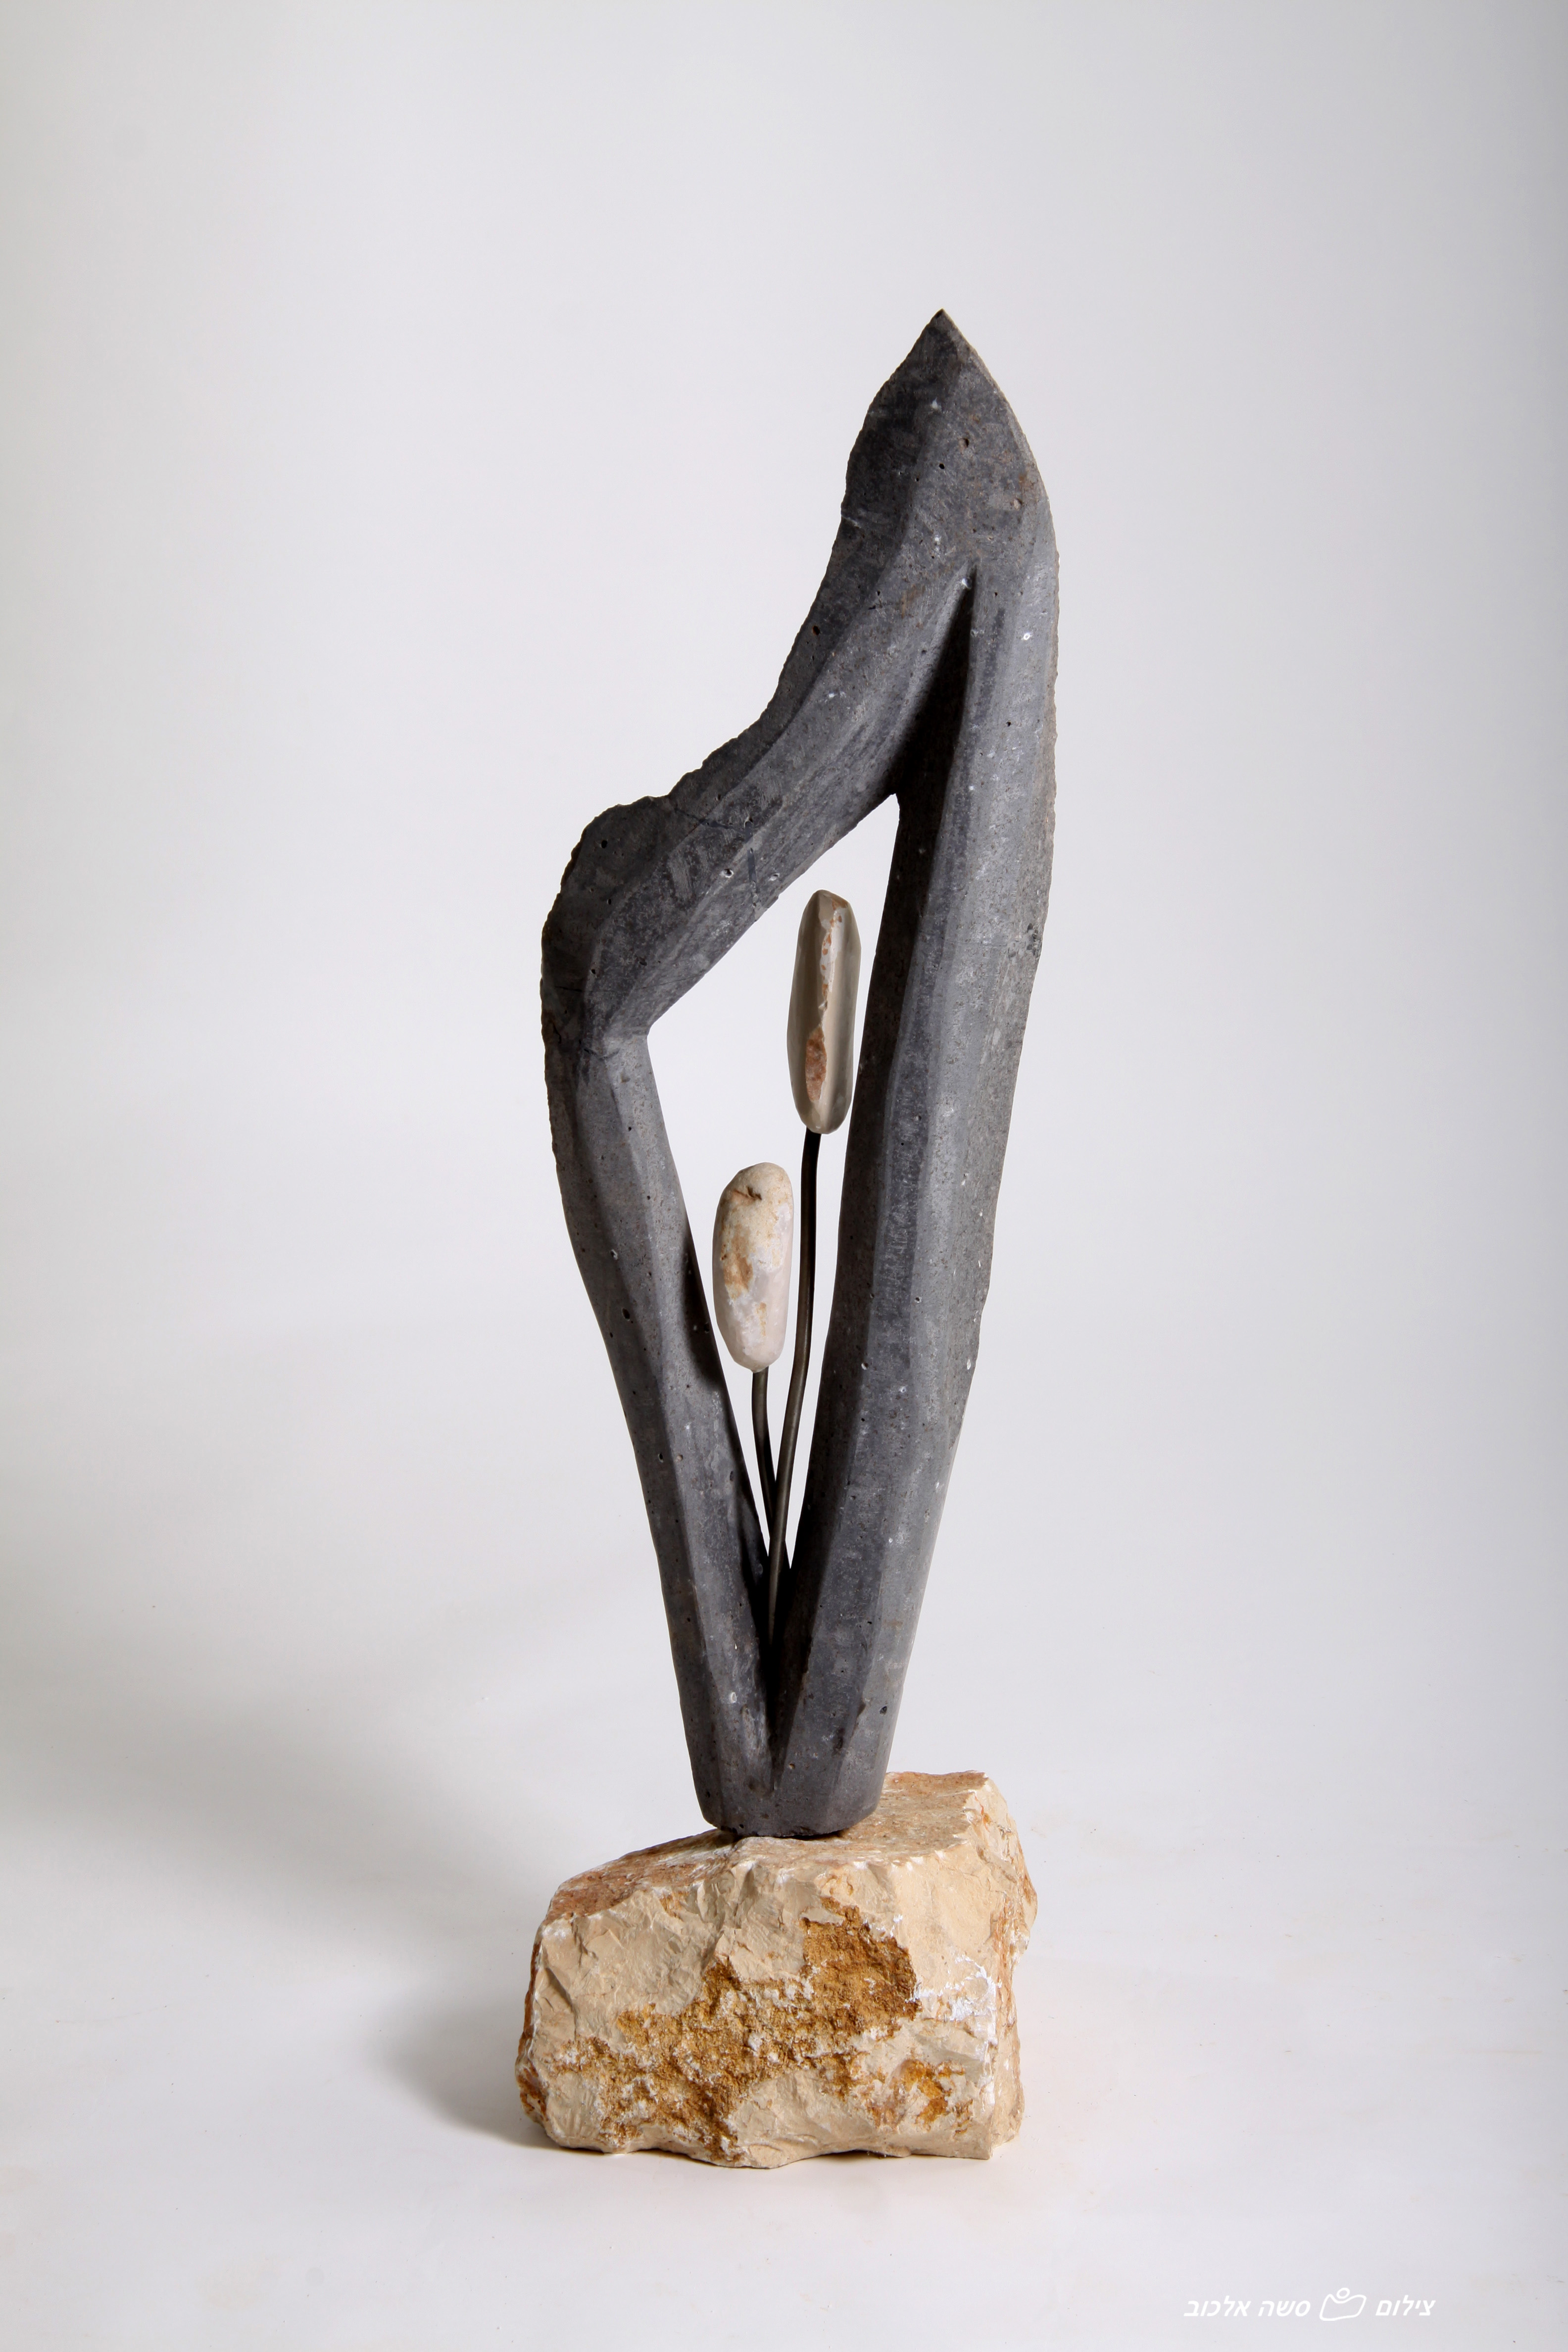 'Abstract' - Sculpture Crafted of Basalt, Limestone & Iron